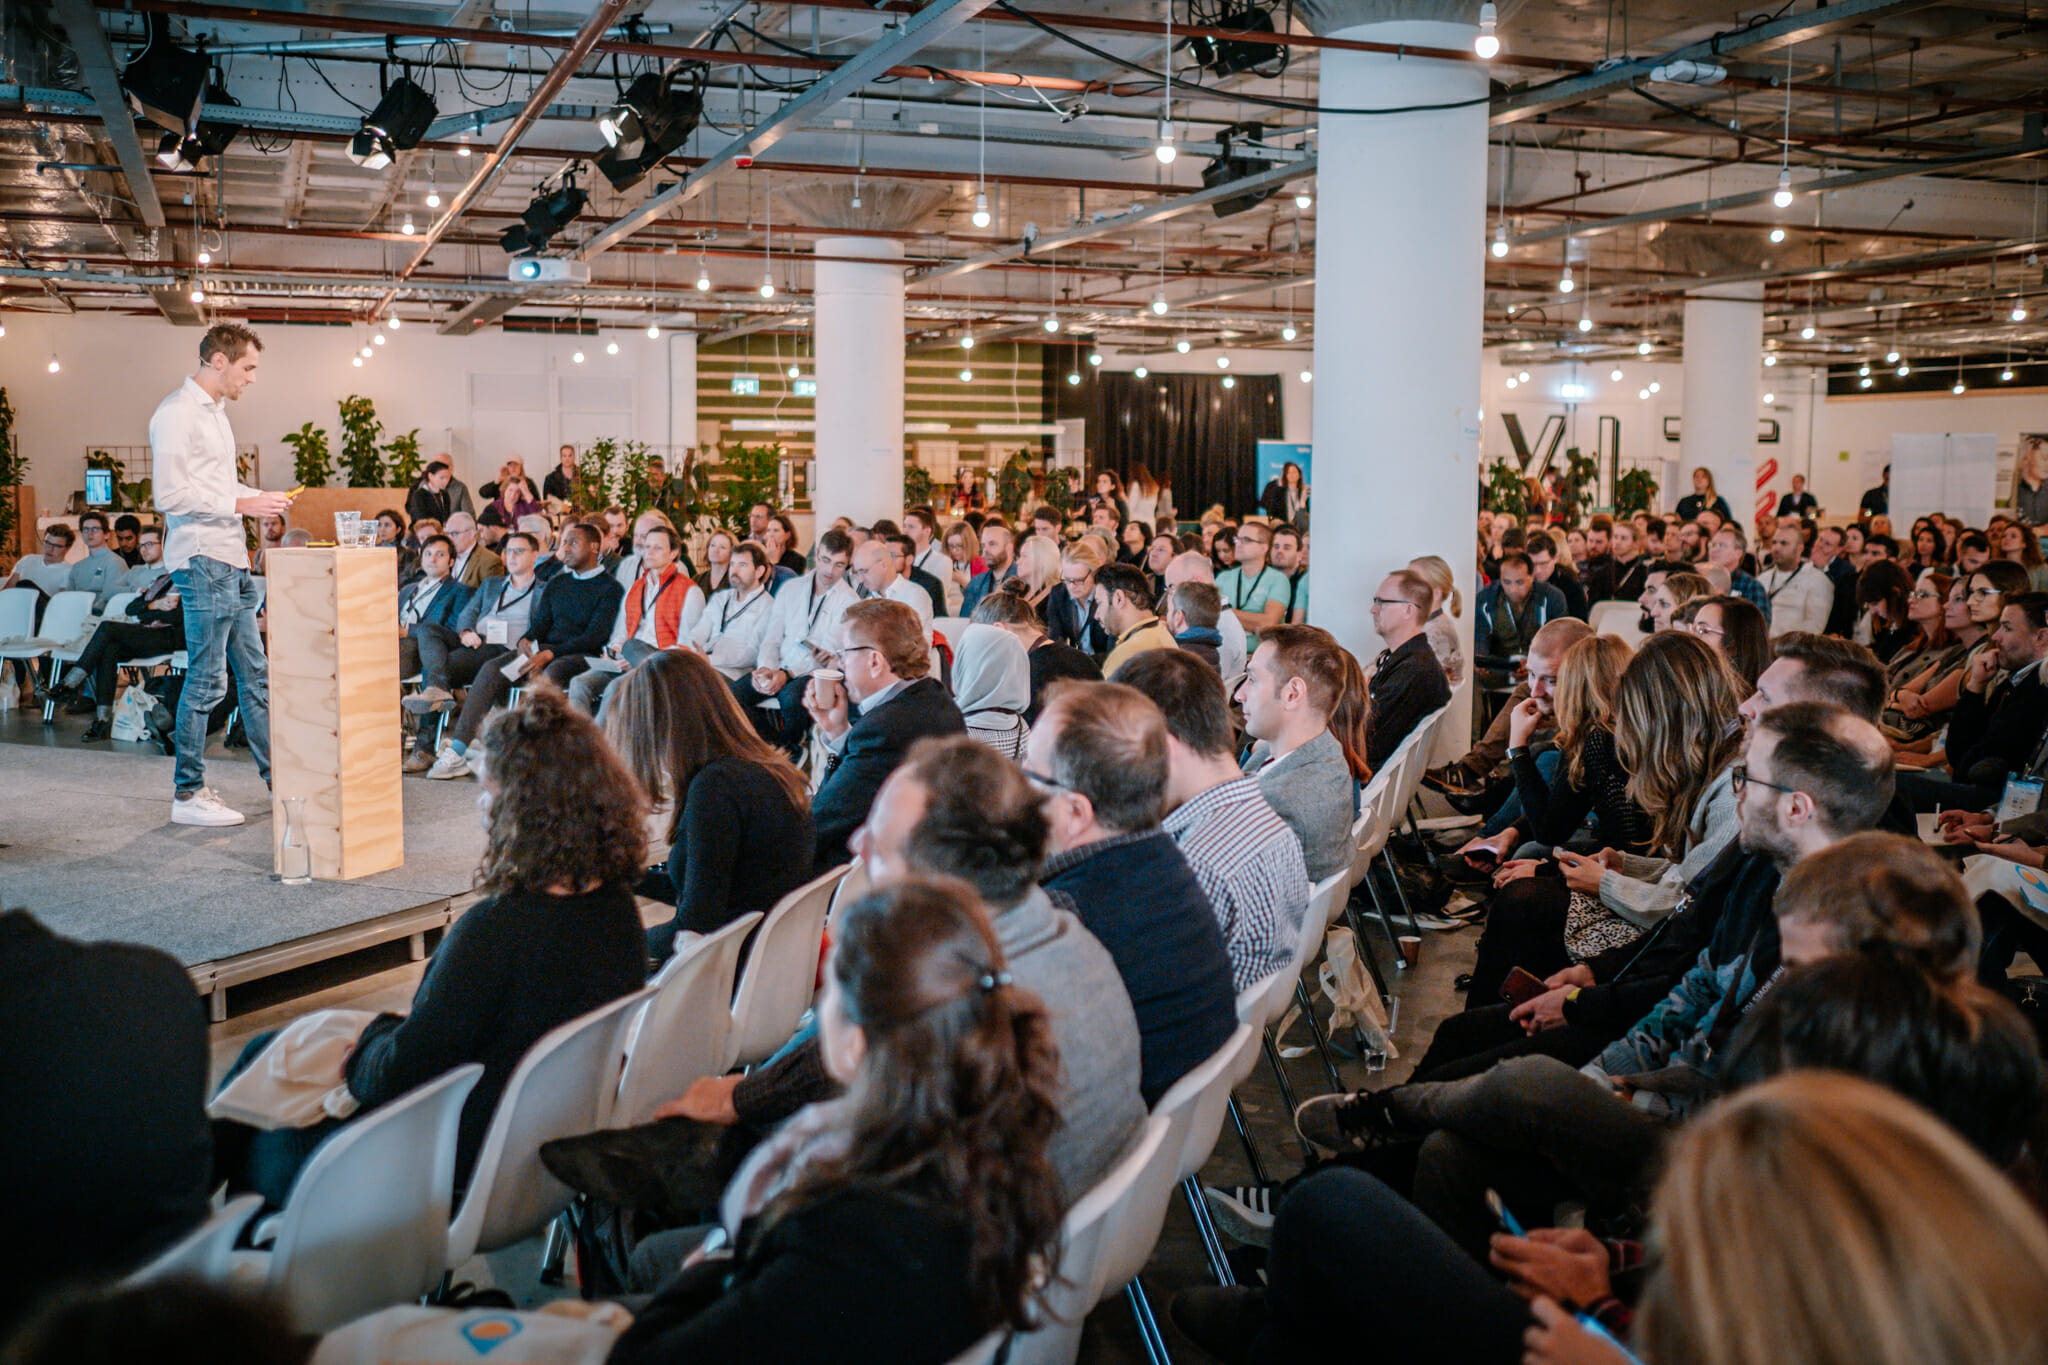 About Coworking conference - Coworking Europe